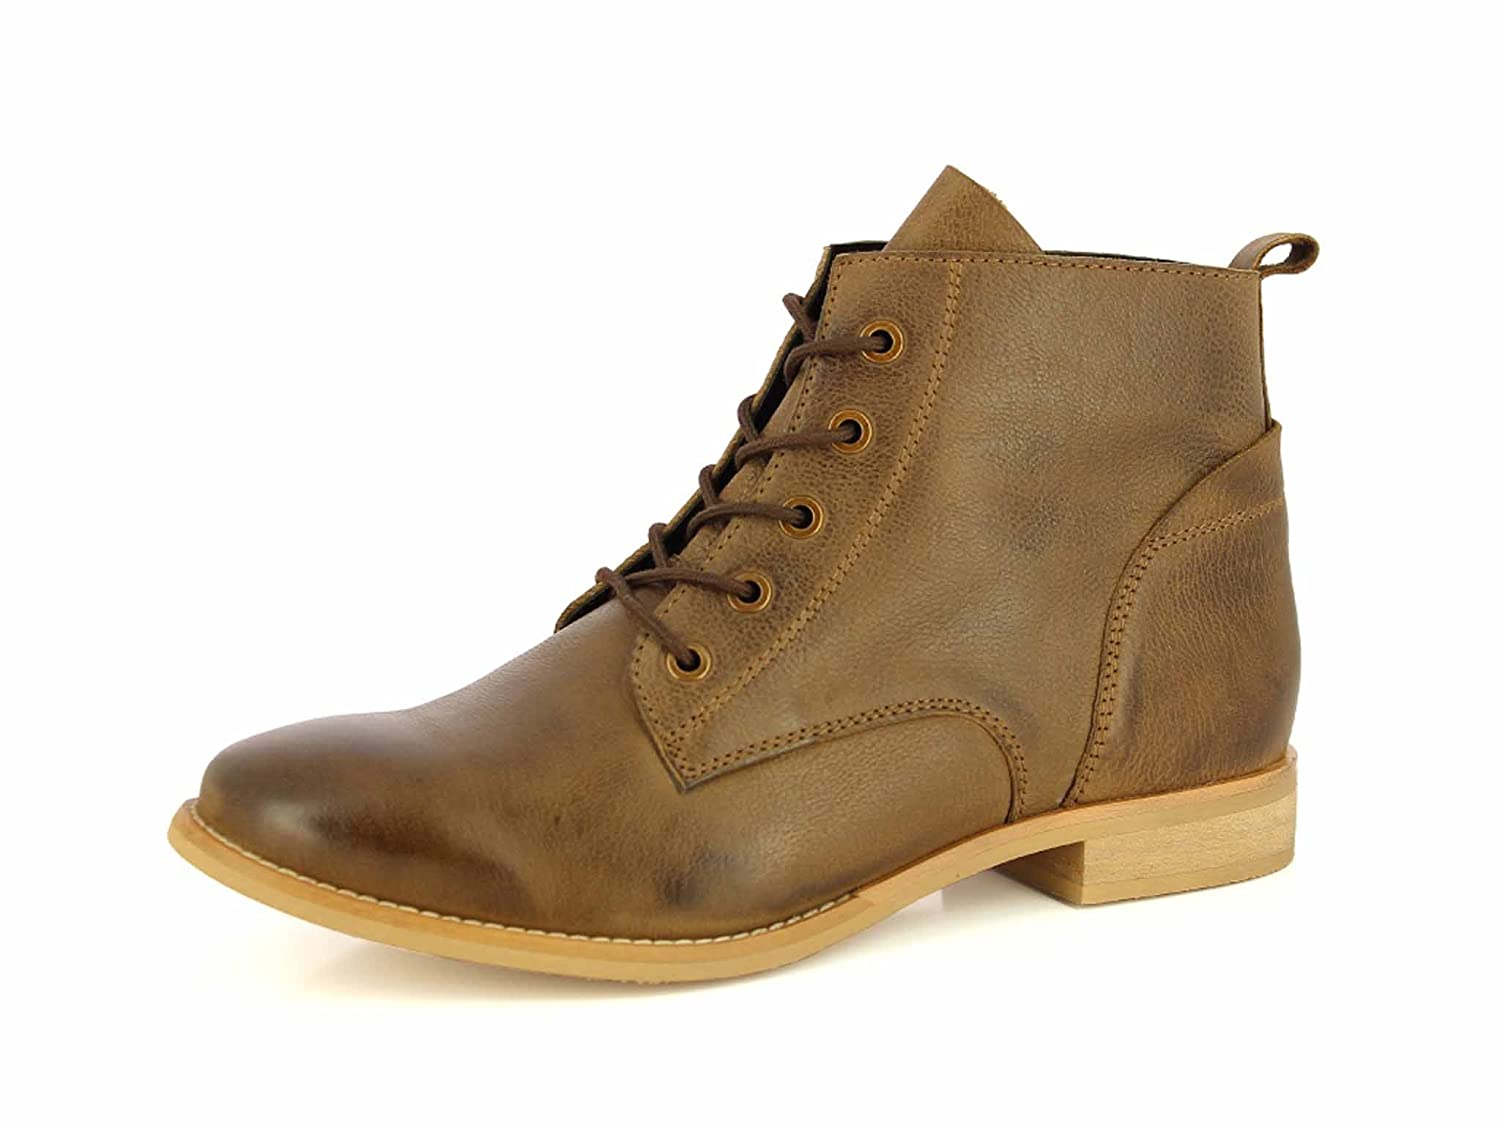 ALBERTO TORRESI Leather Ankle Boots For Women Lace Up Casual Durbey Shoes Combat Boots Booties B07425NLQR 9 B(M) US|Taupe